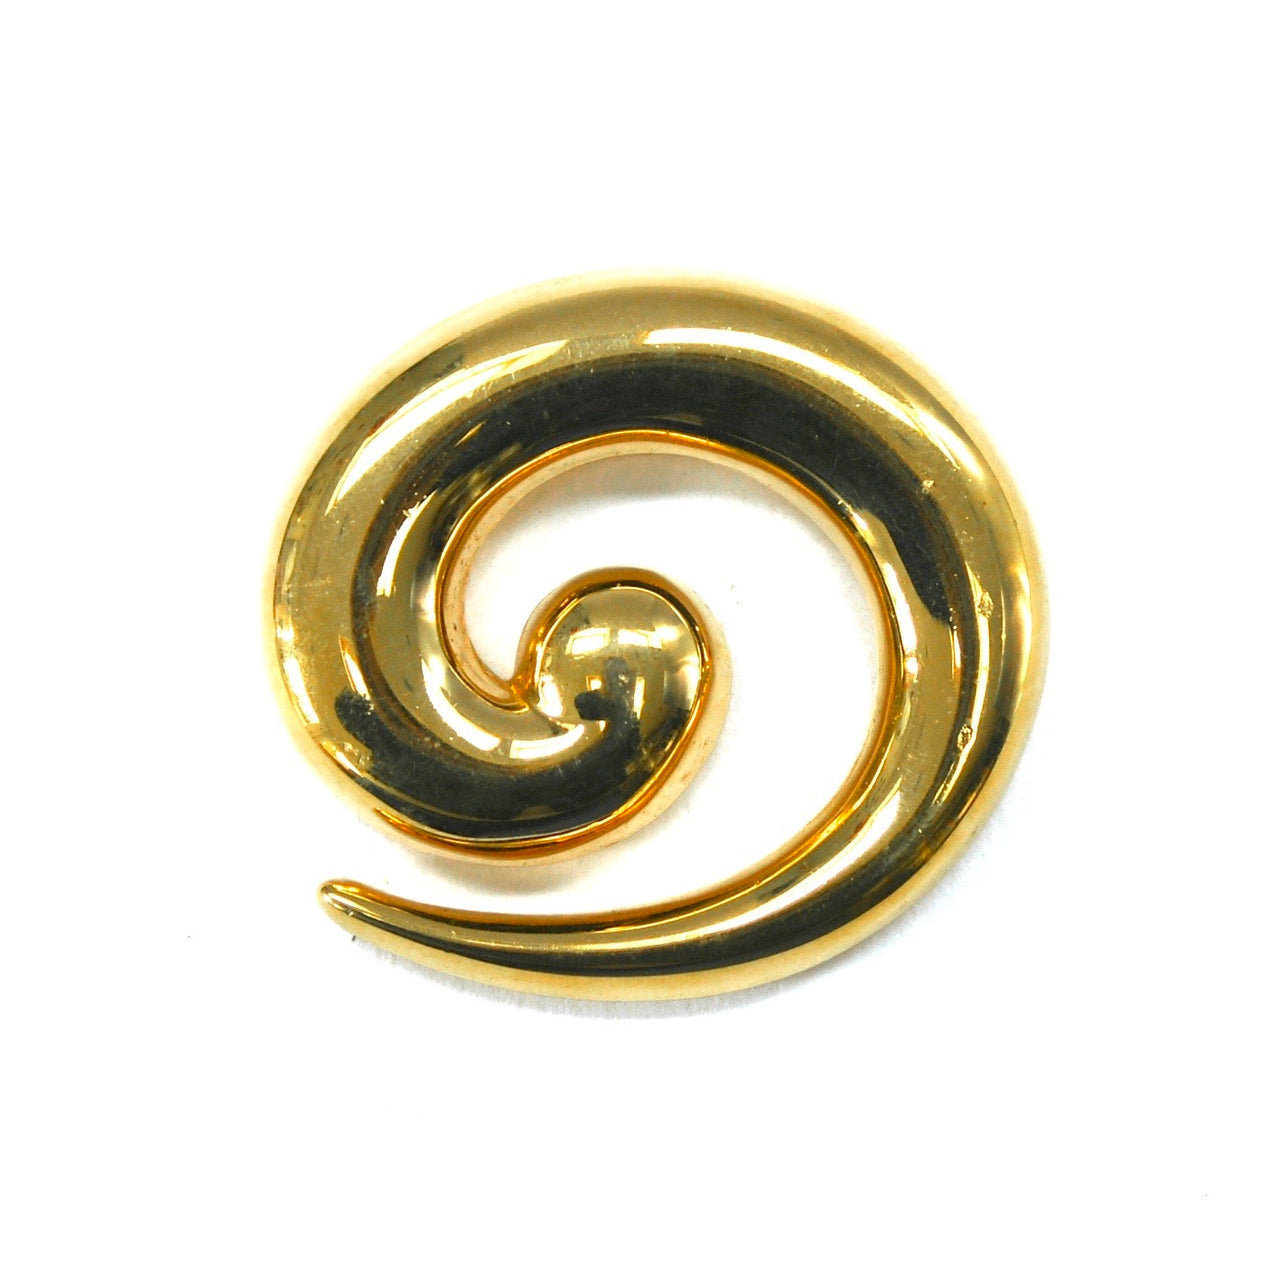 1980s Vintage Money Swirl Brooch